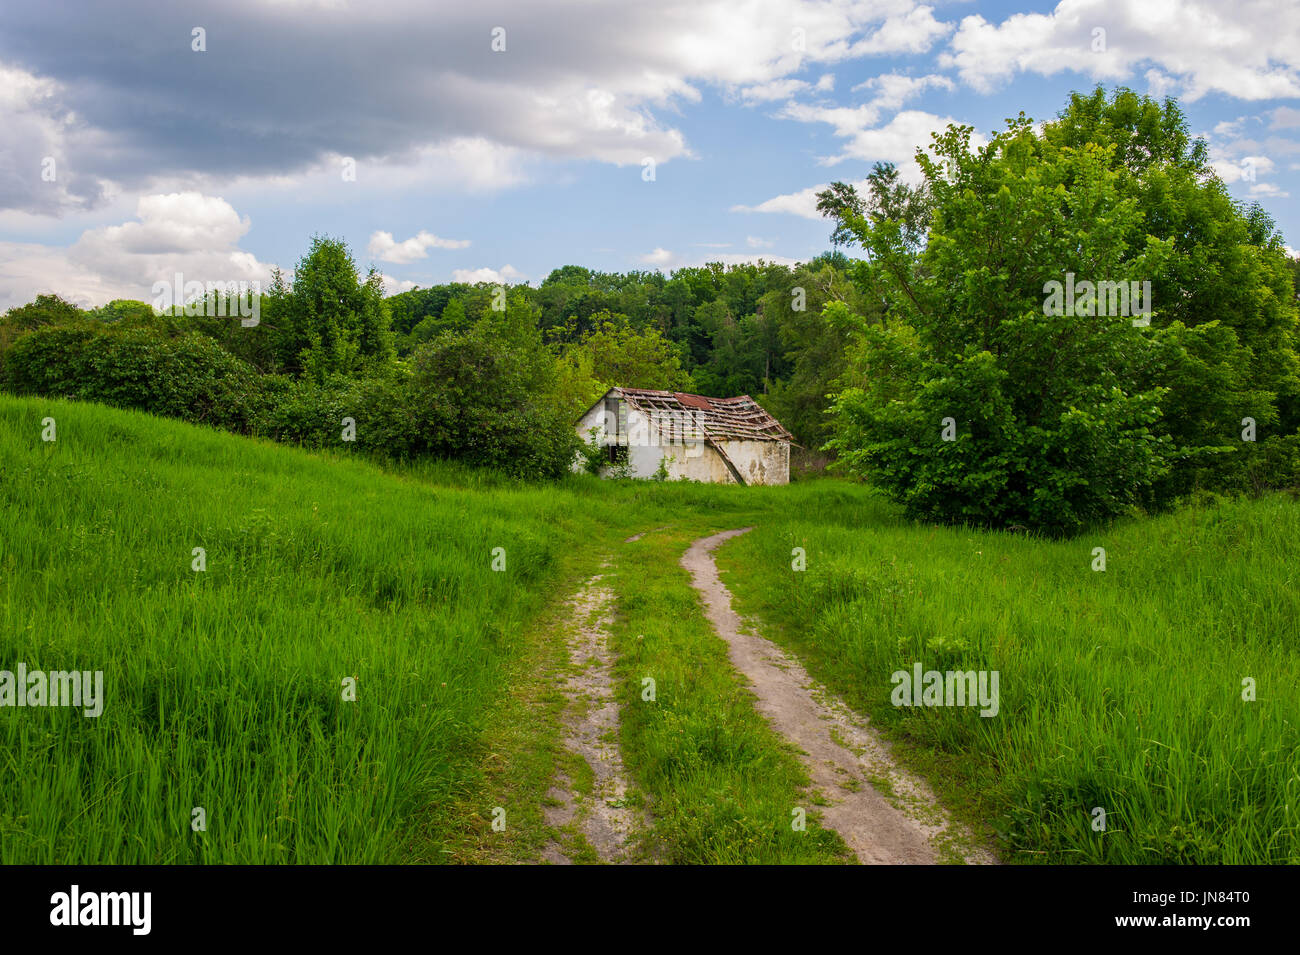 Dirt trail to the old house in the forest - Stock Image